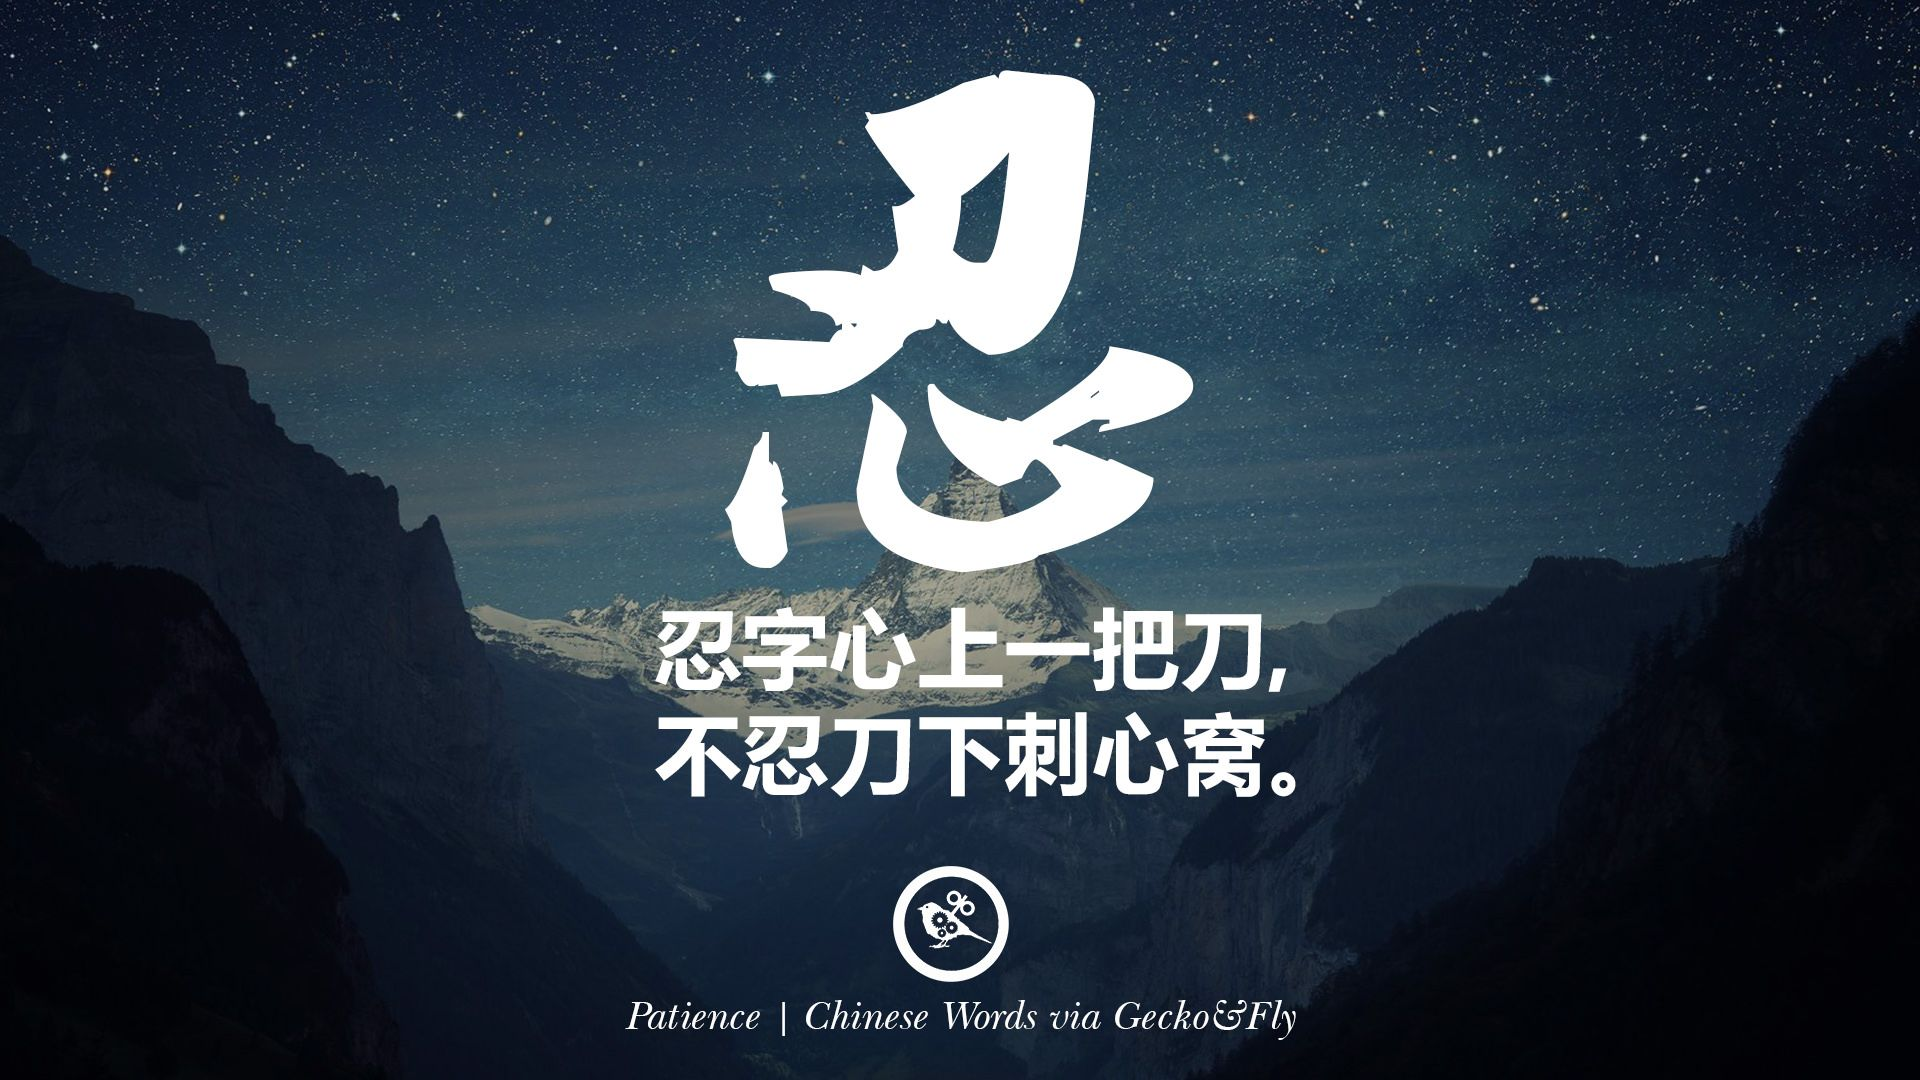 1920x1080 9 Beautiful And Meaningful Chinese Japanese Kanji Words